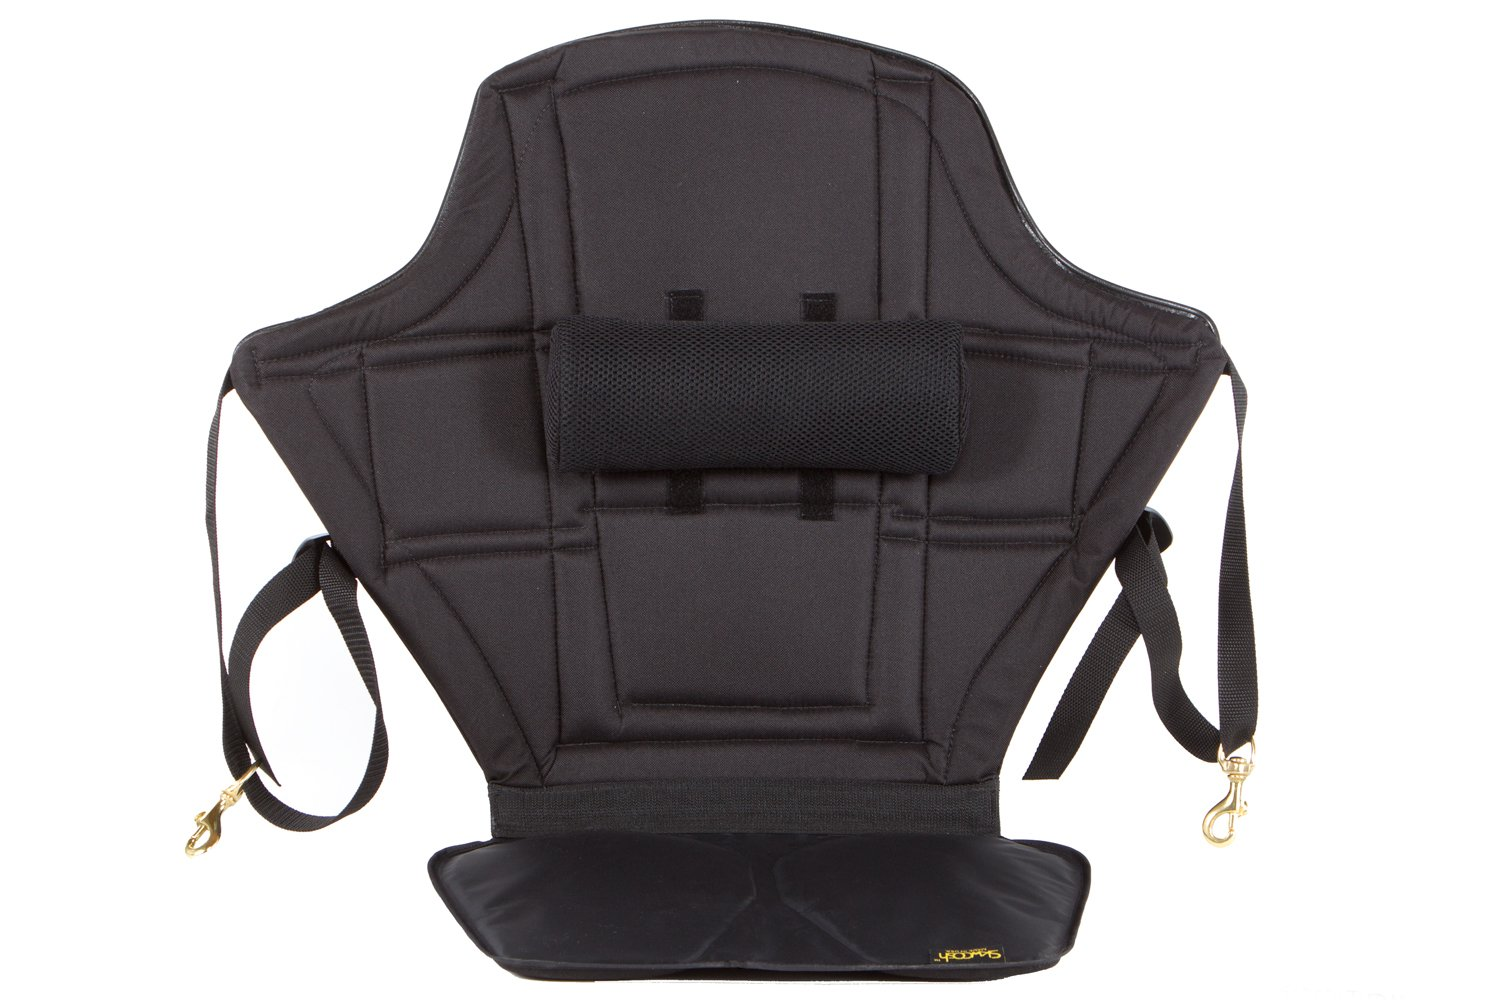 Skwoosh High Back Kayak Seat with adjustable lumbar support and waterproof nylon seat | Made in USA by Skwoosh (Image #1)